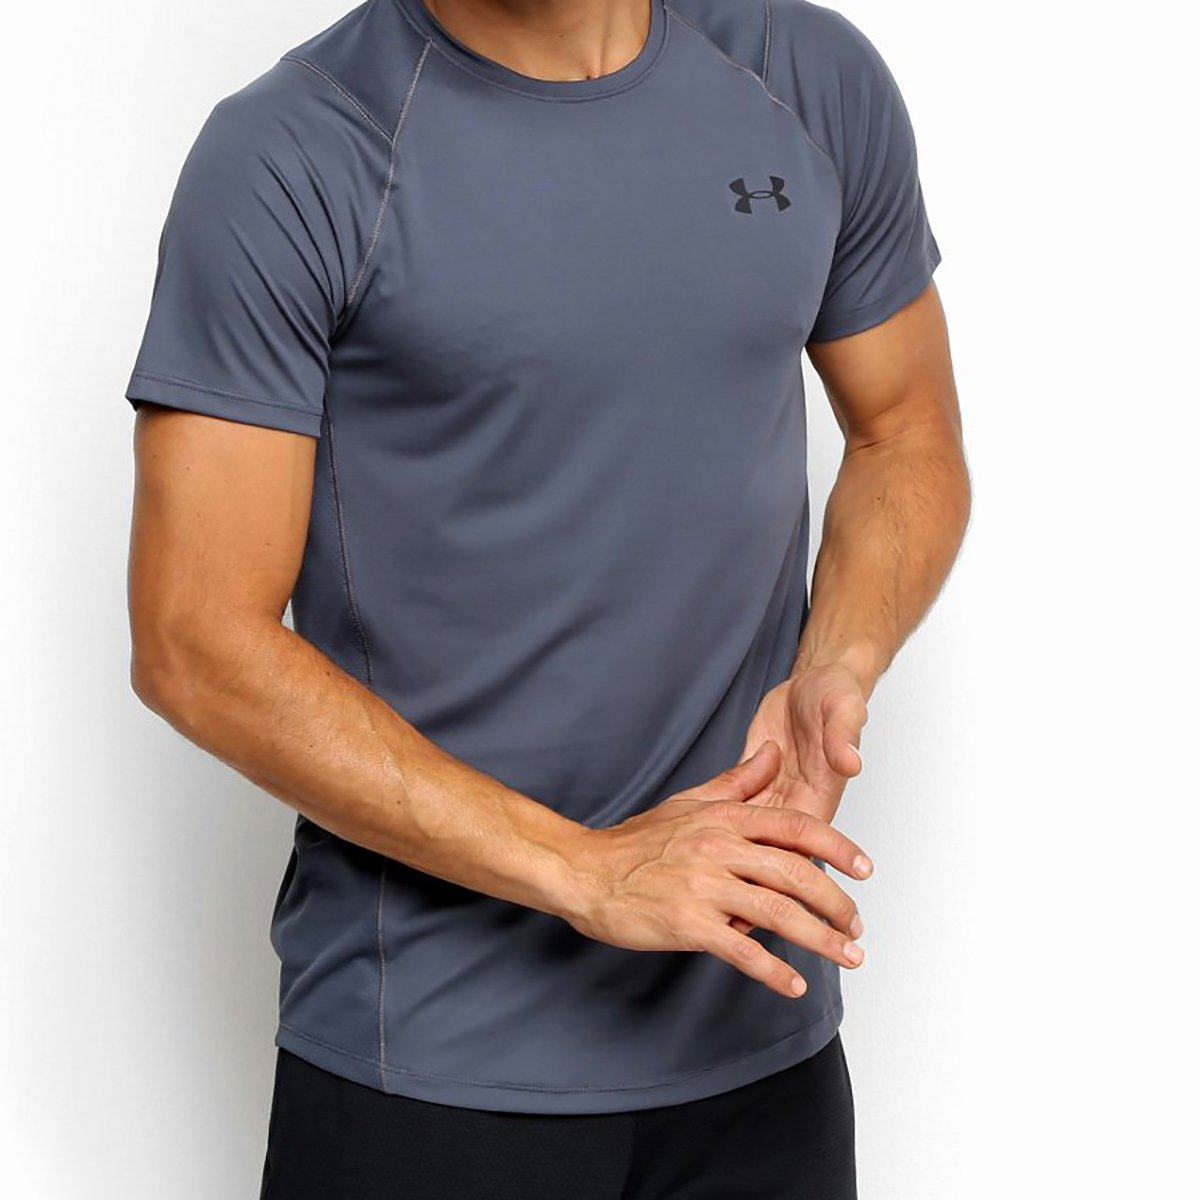 Camiseta Under Armour MK-1 Masculina - Chumbo